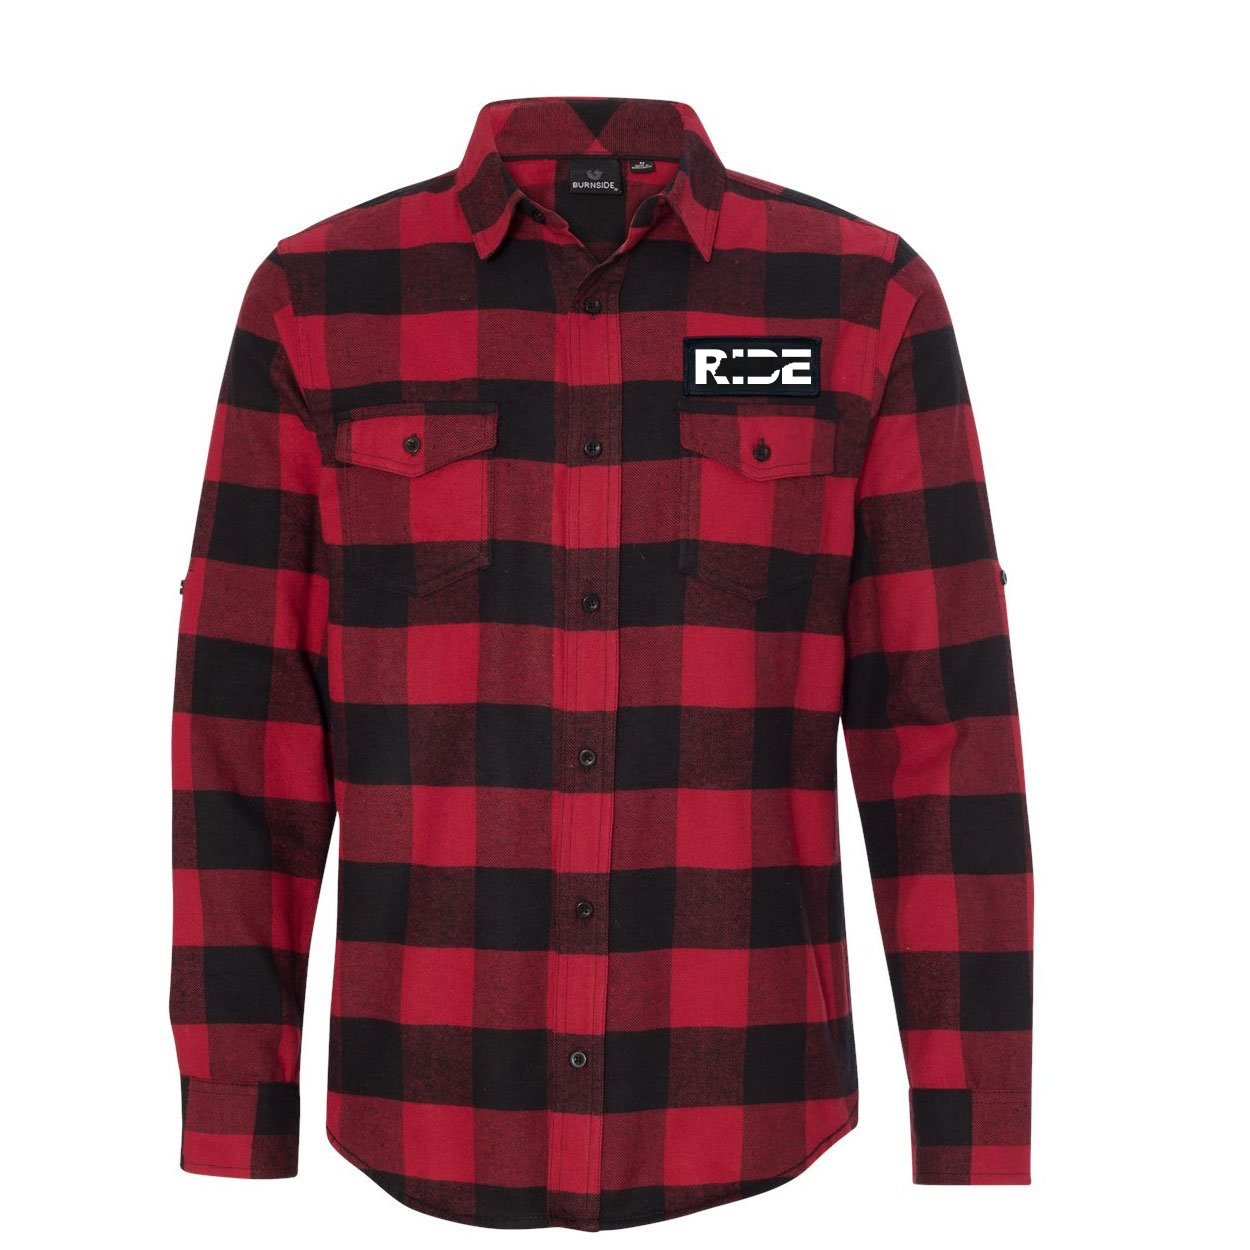 Ride Tennessee Classic Unisex Long Sleeve Woven Patch Flannel Shirt Red/Black Buffalo (White Logo)